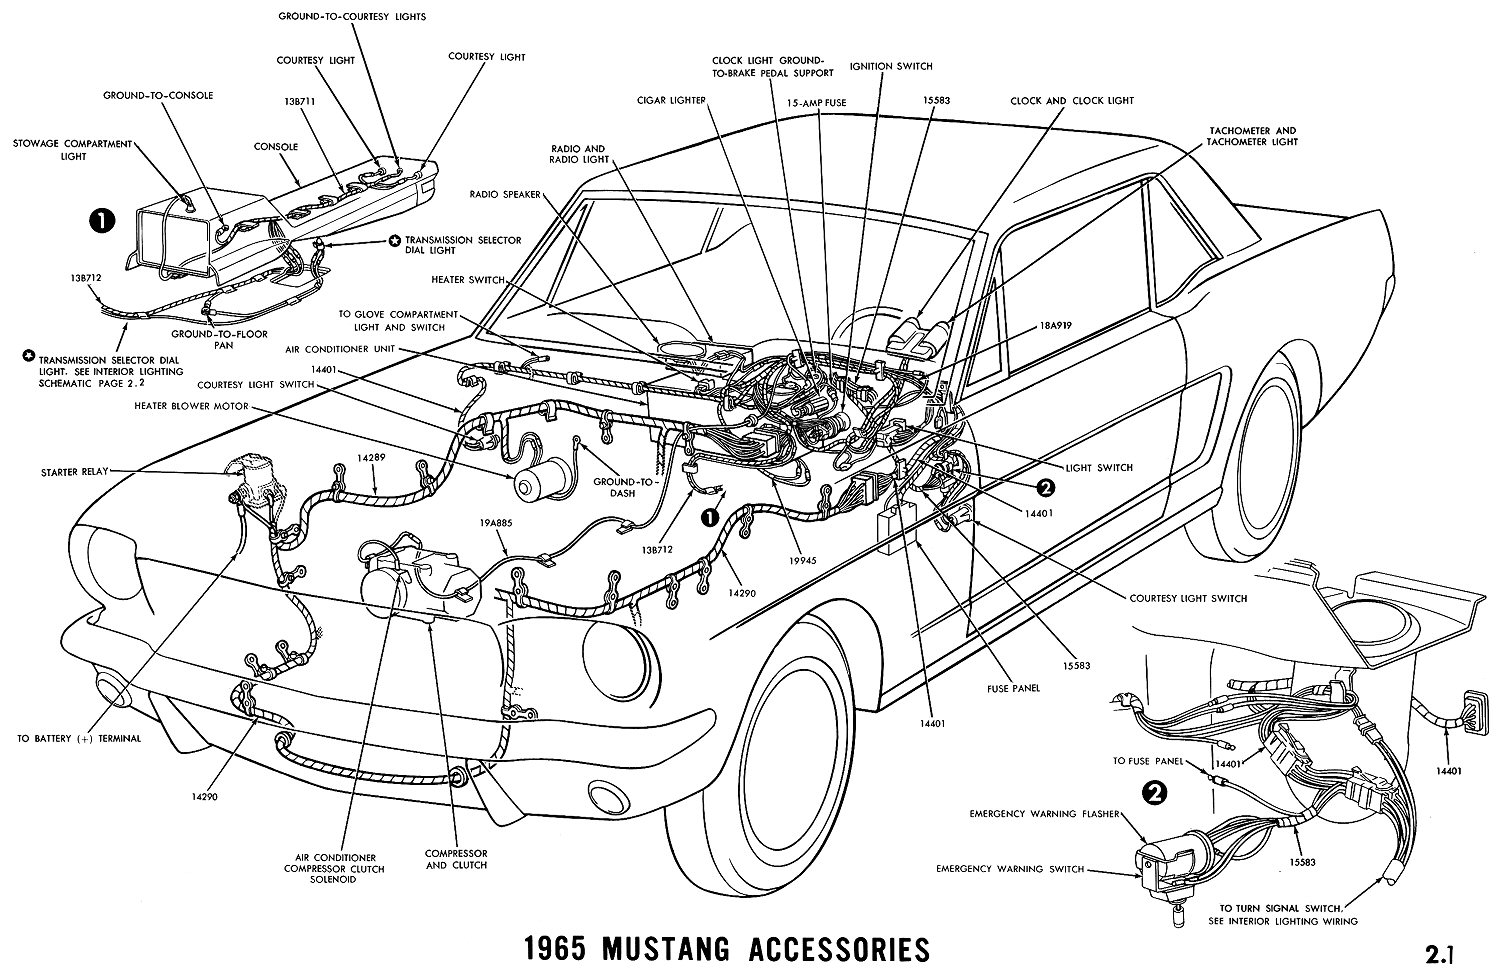 1965 mustang accesories diagram rh diagrams hissind com 65 Mustang Horn Relay Location Is There Fuses for 1965 Mustang Coil